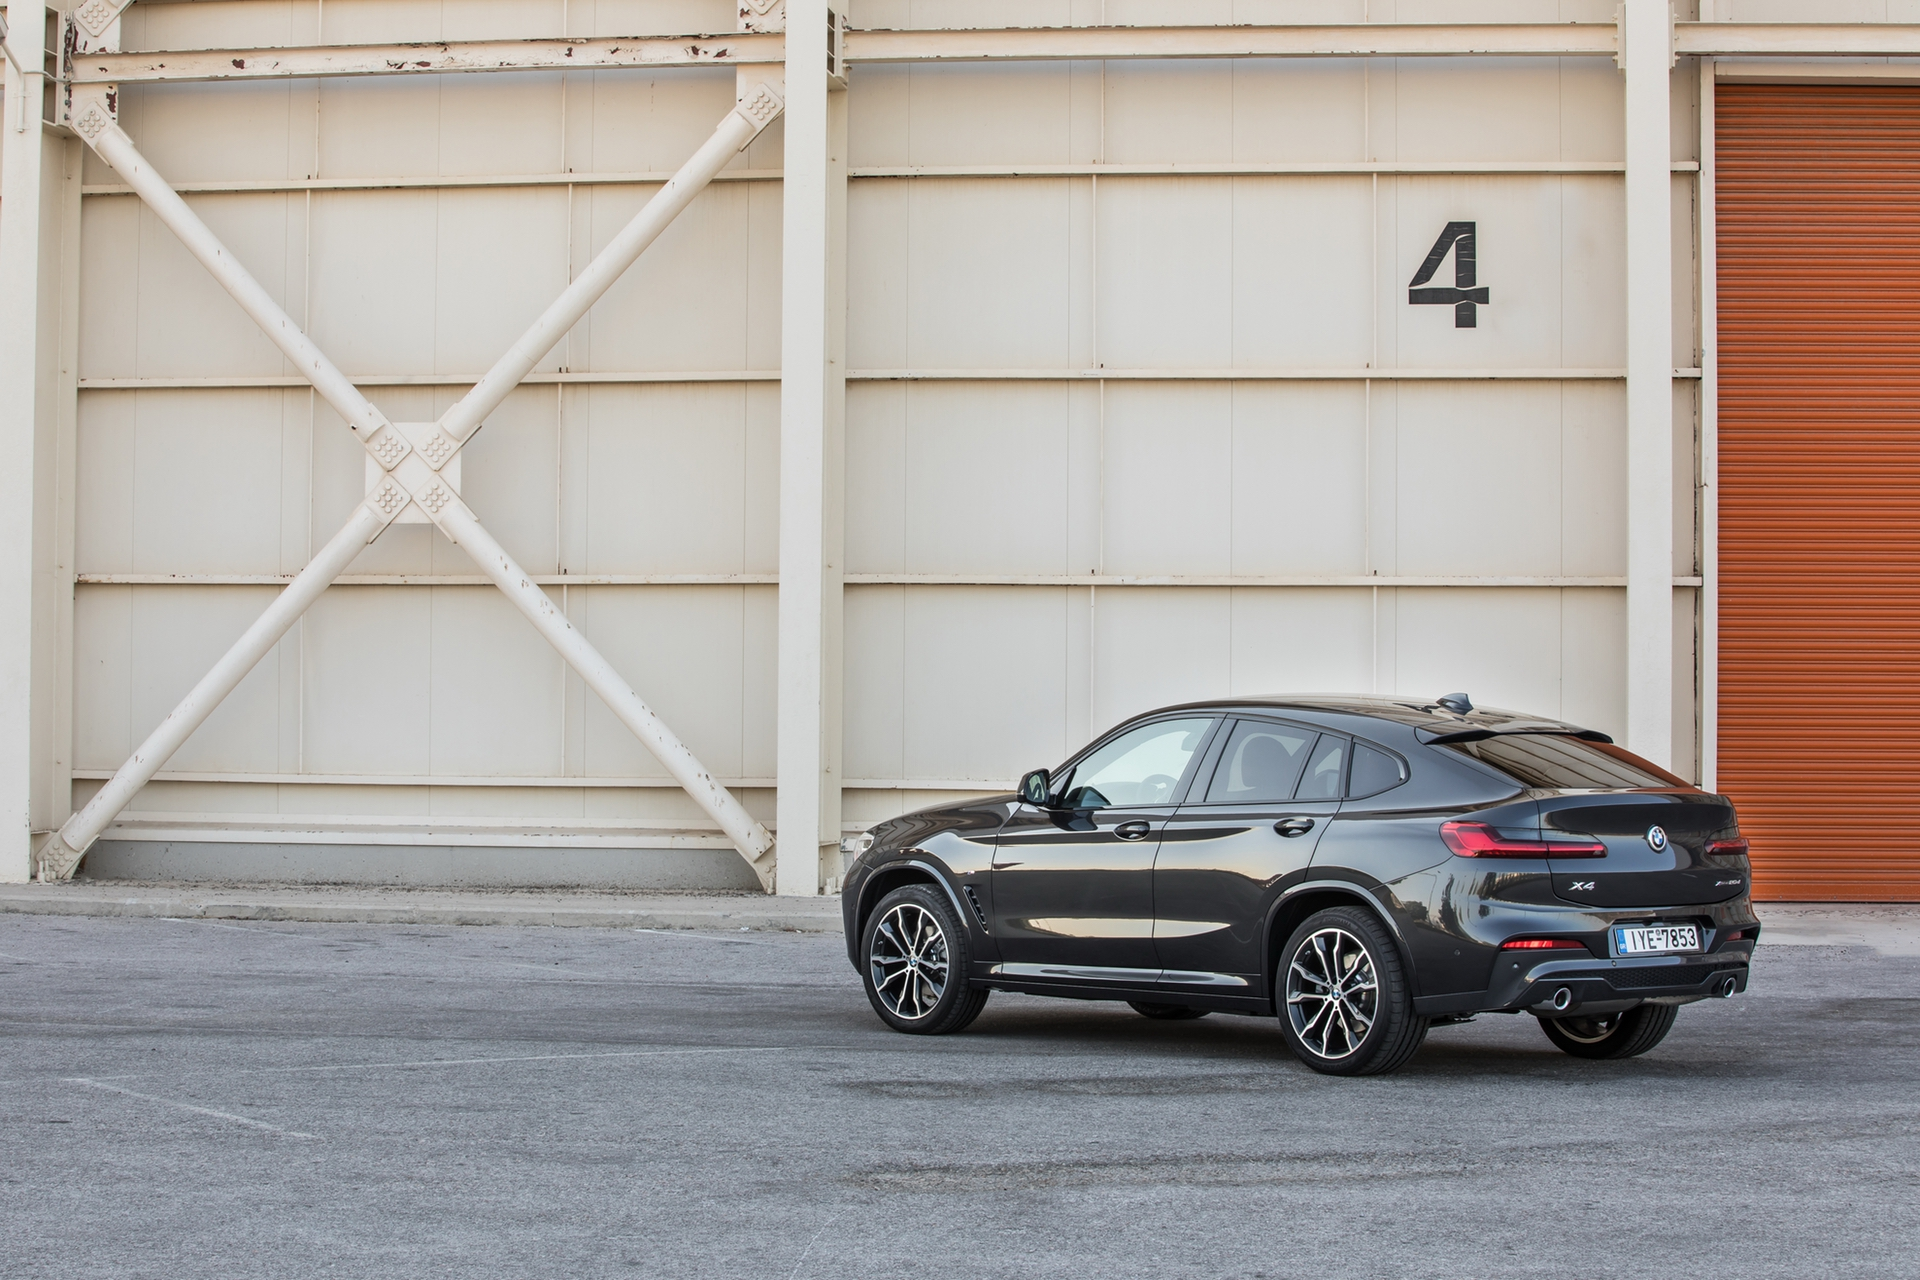 BMW_X4_greek_presskit_0050